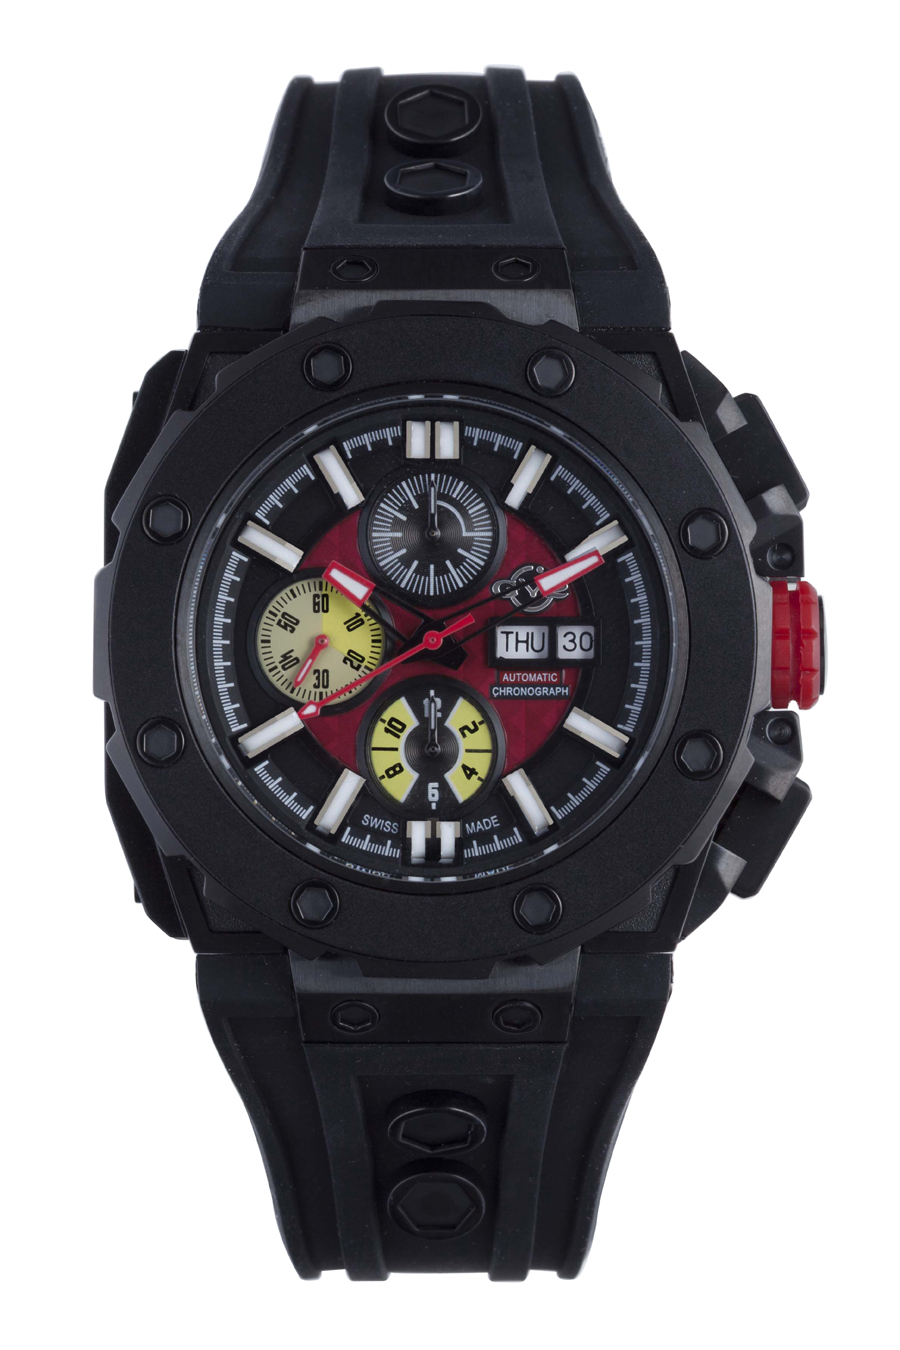 Gevril gv2 mens 8805 corsaro limited edition black dial automatic chronograph luxury watches for Gevril watches